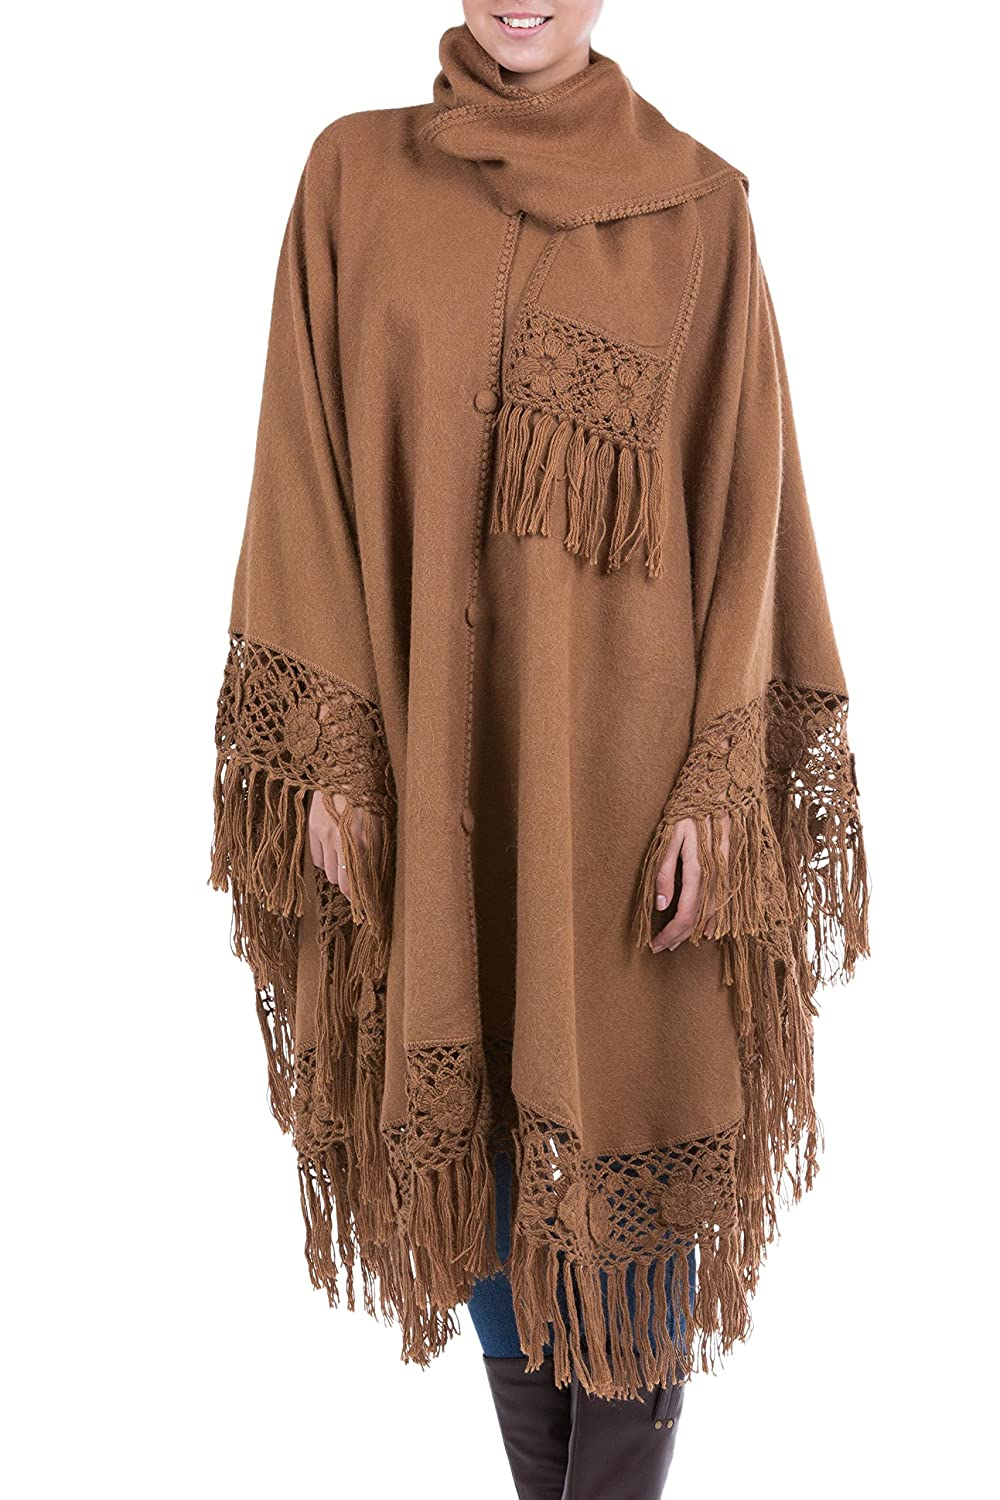 NOVICA Brown Alpaca Blend Poncho, 'Warm Earth'